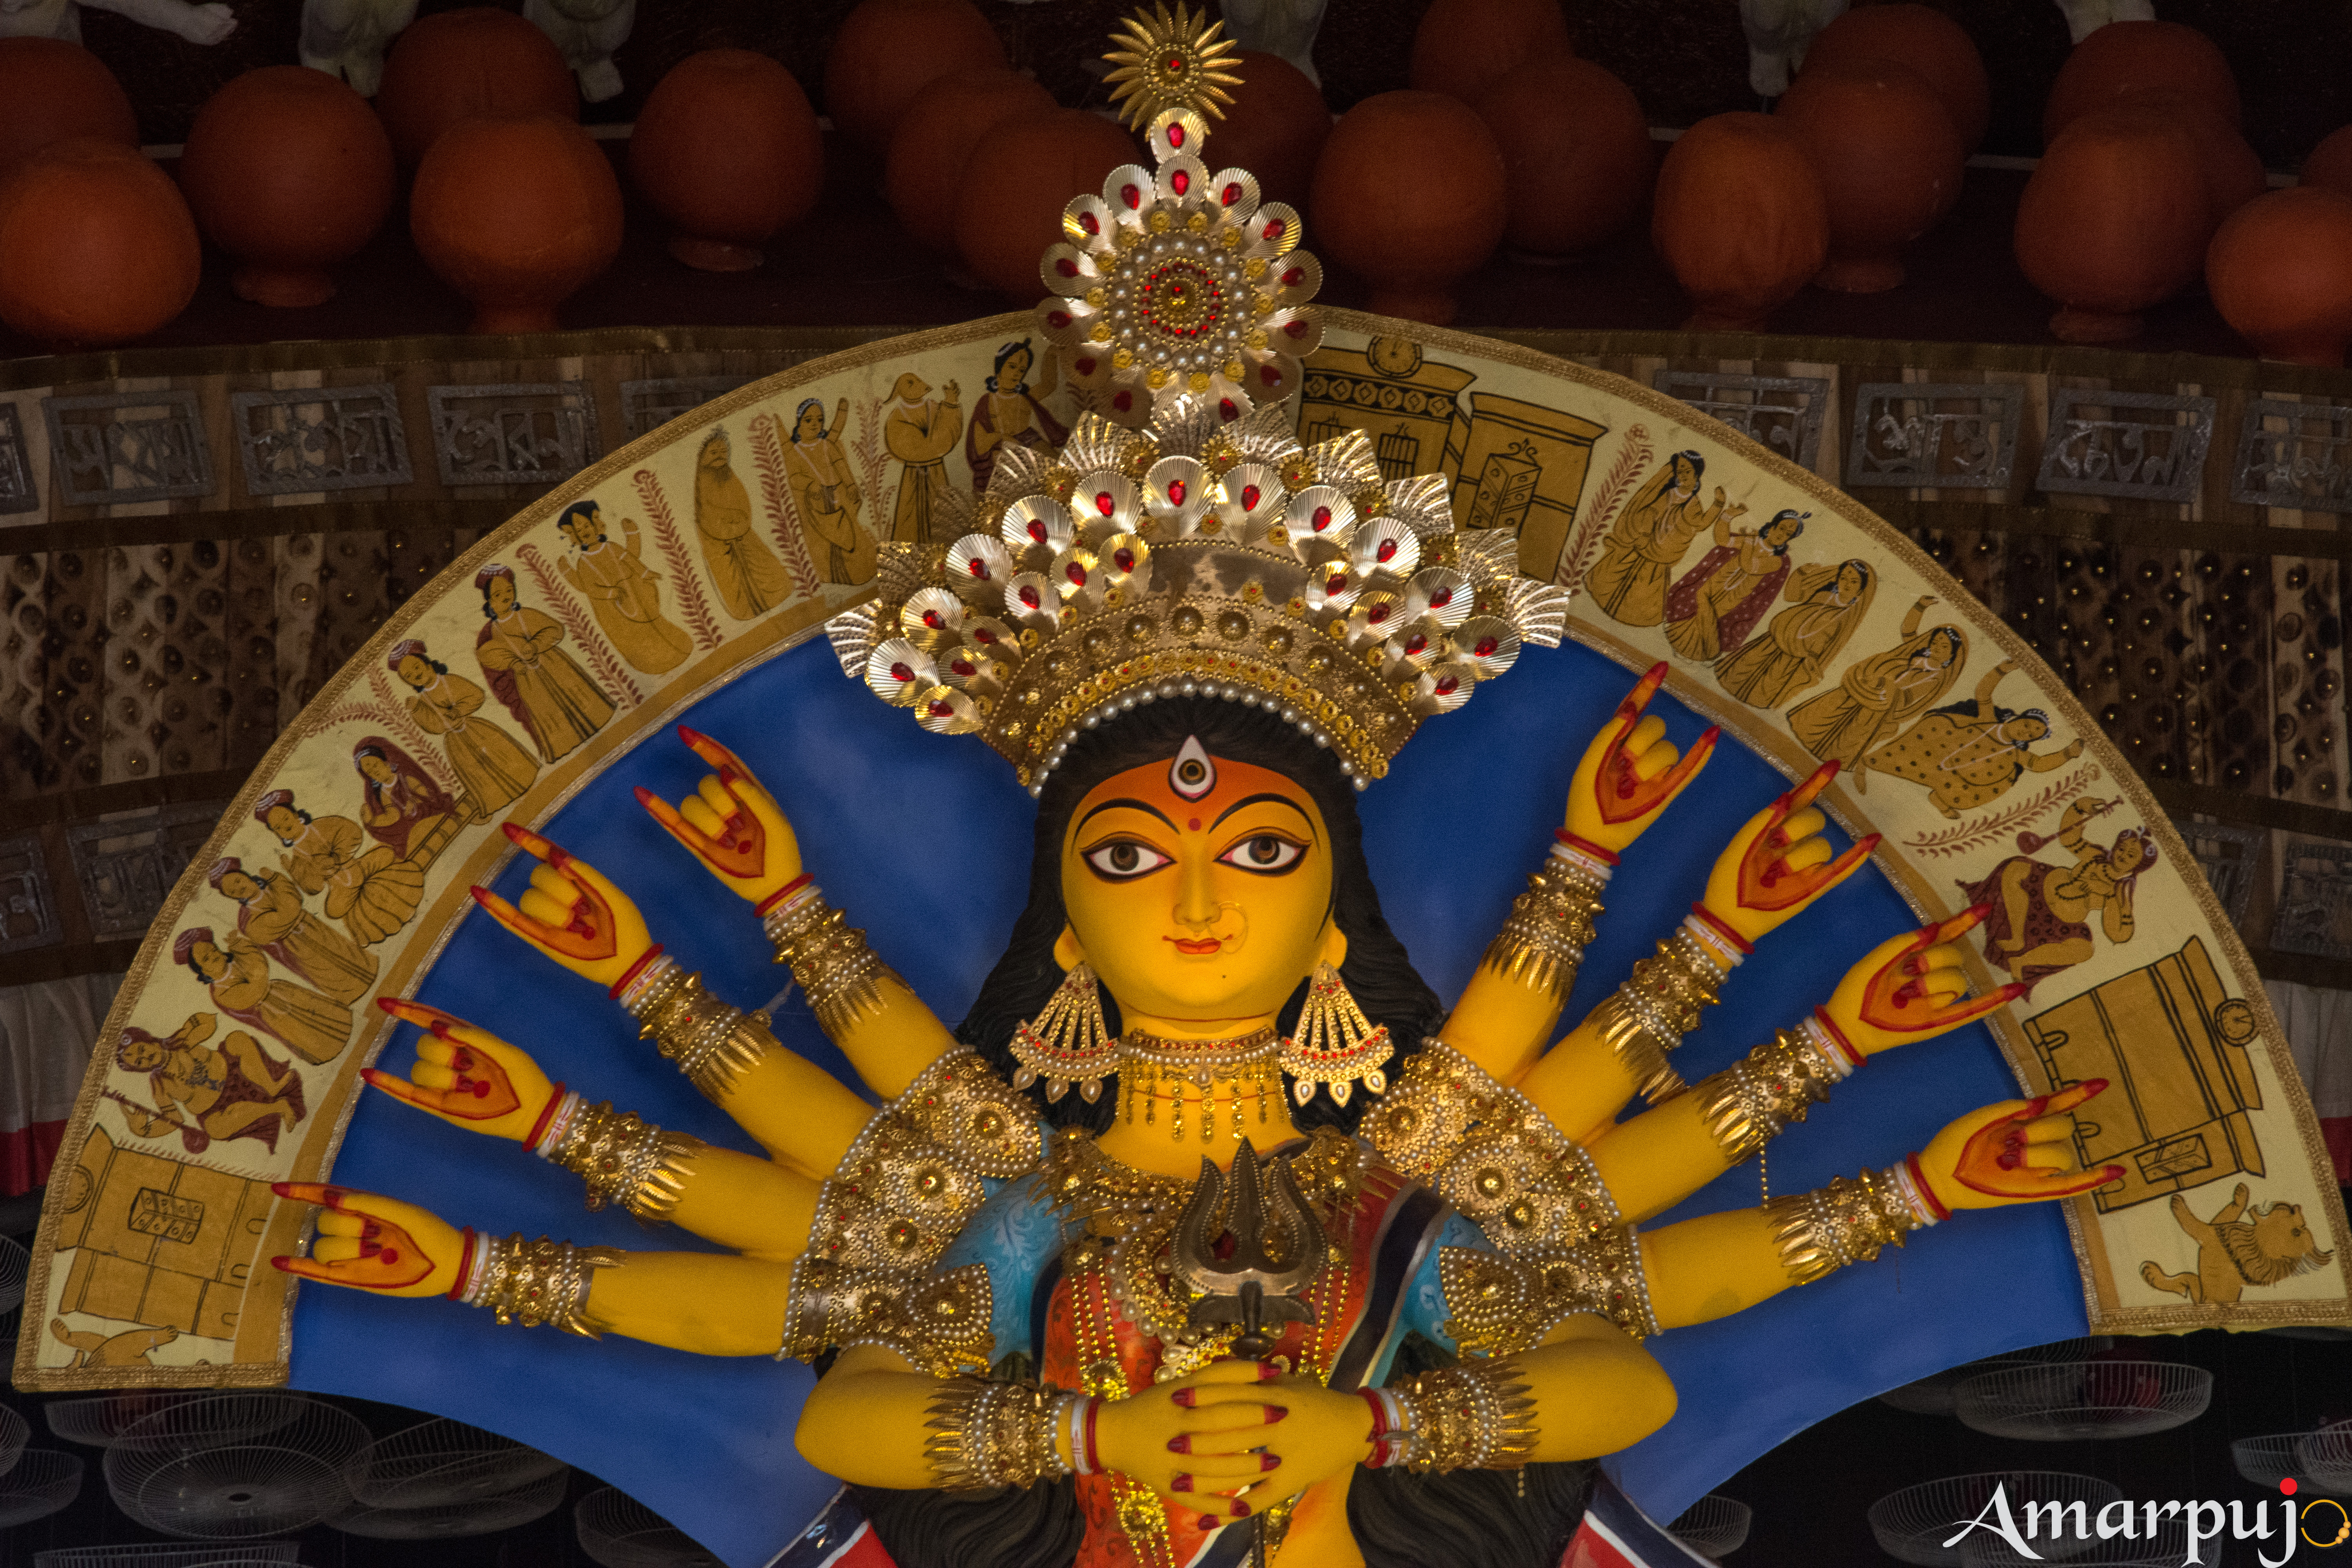 Durga Puja 2018 Best of South Kolkata - Amarpujo, Durga Puja Festival in Kolkata RSS Feed  IMAGES, GIF, ANIMATED GIF, WALLPAPER, STICKER FOR WHATSAPP & FACEBOOK